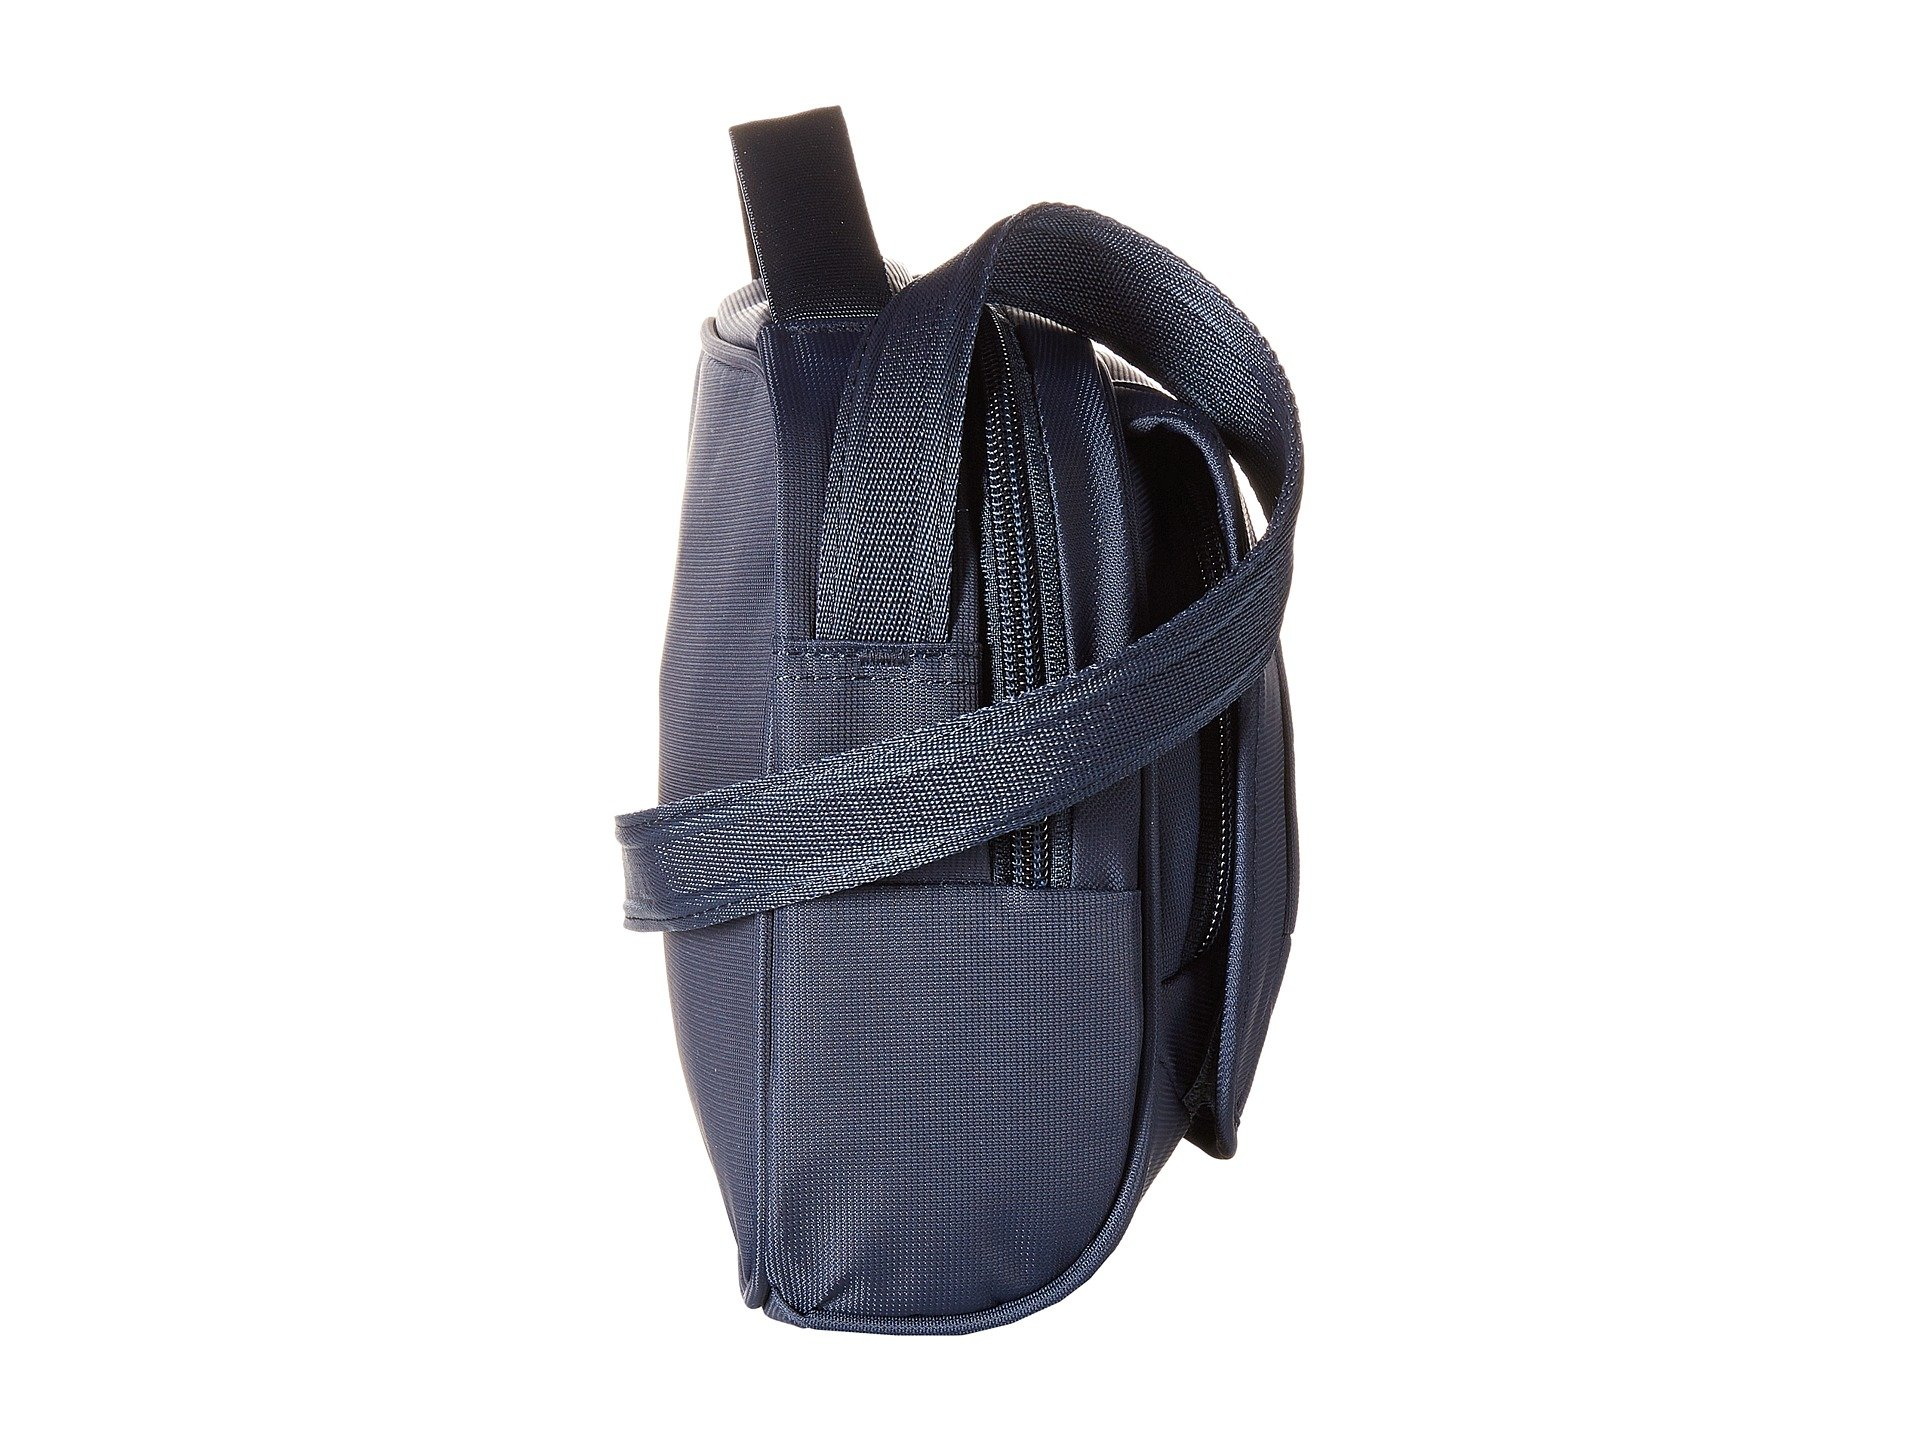 Anti Pacsafe Bag Metrosafe Shoulder theft Compact Navy Deep Ls140 Ffw6xqfEH